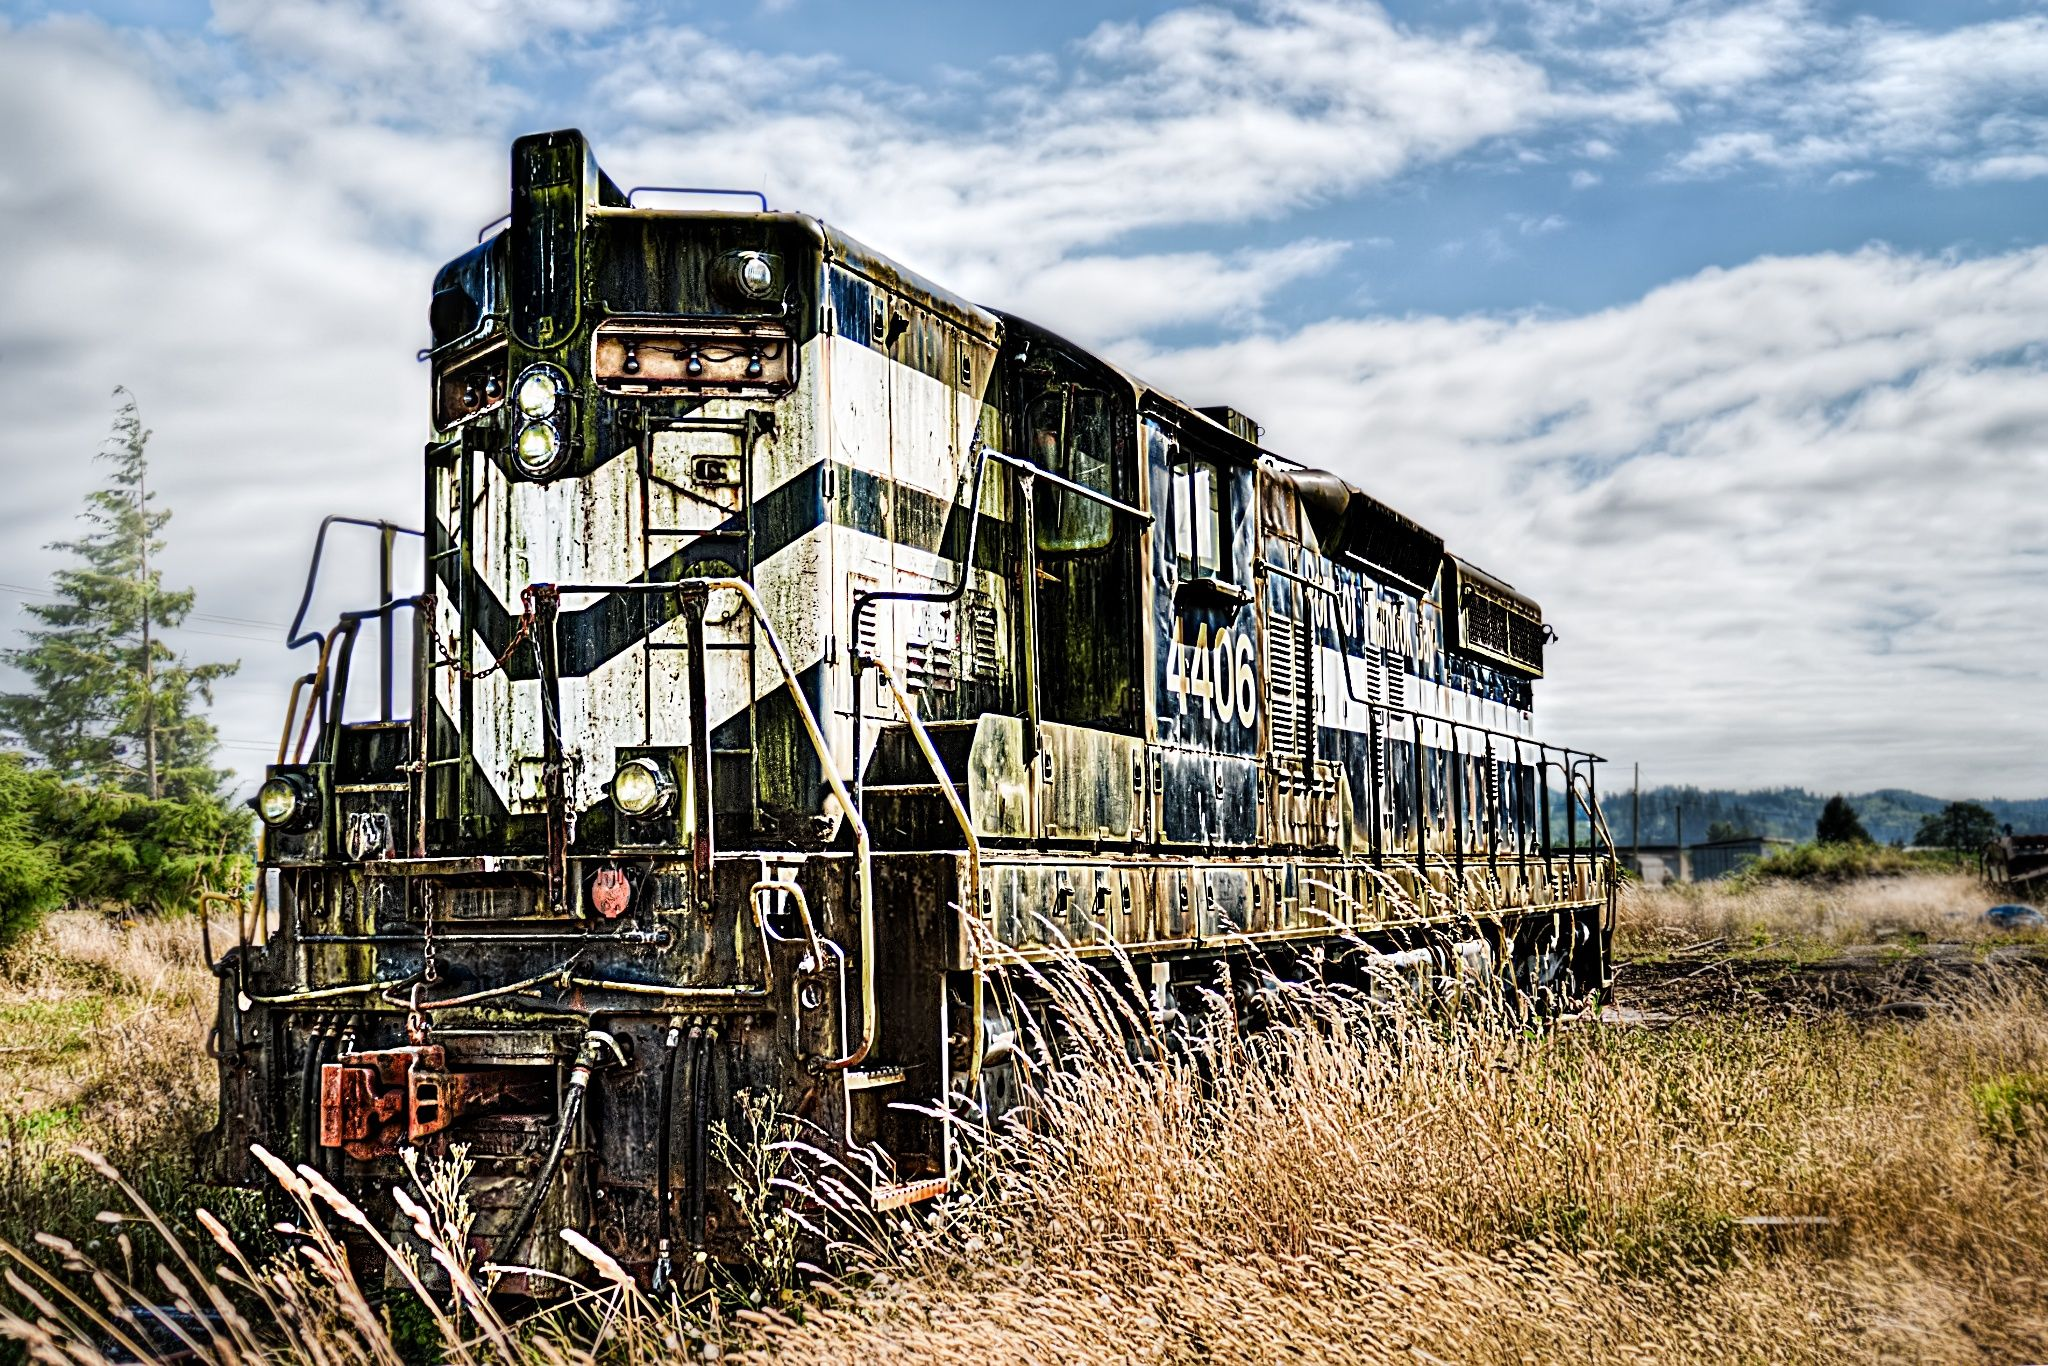 Out To Pasture by Ryan J. Zeigler on 500px Old trains